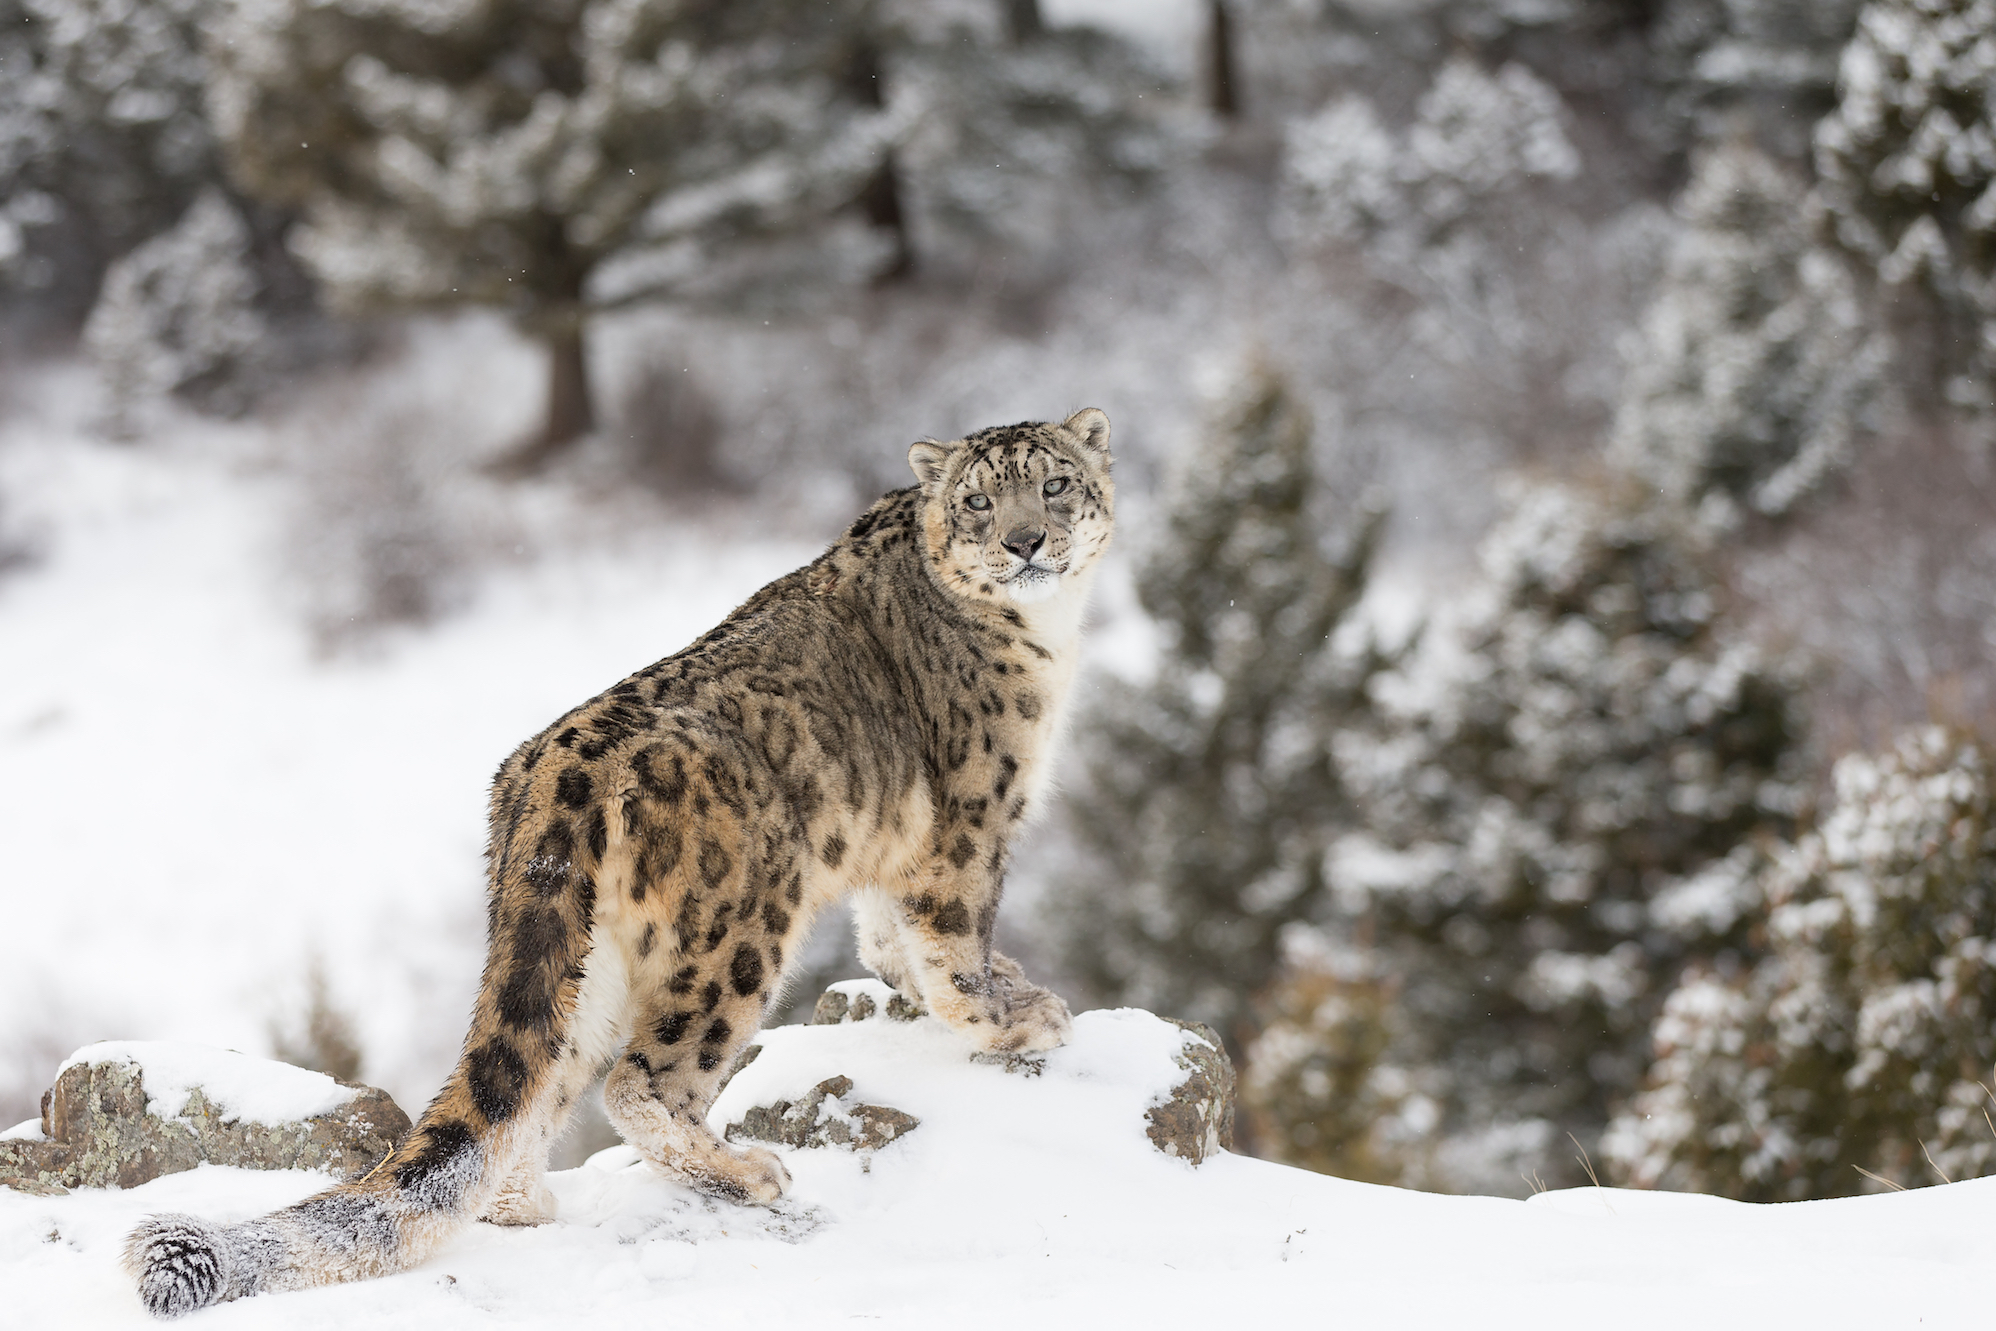 According to a new study, researchers have uncovered three previously unknown subspecies of the snow leopard.